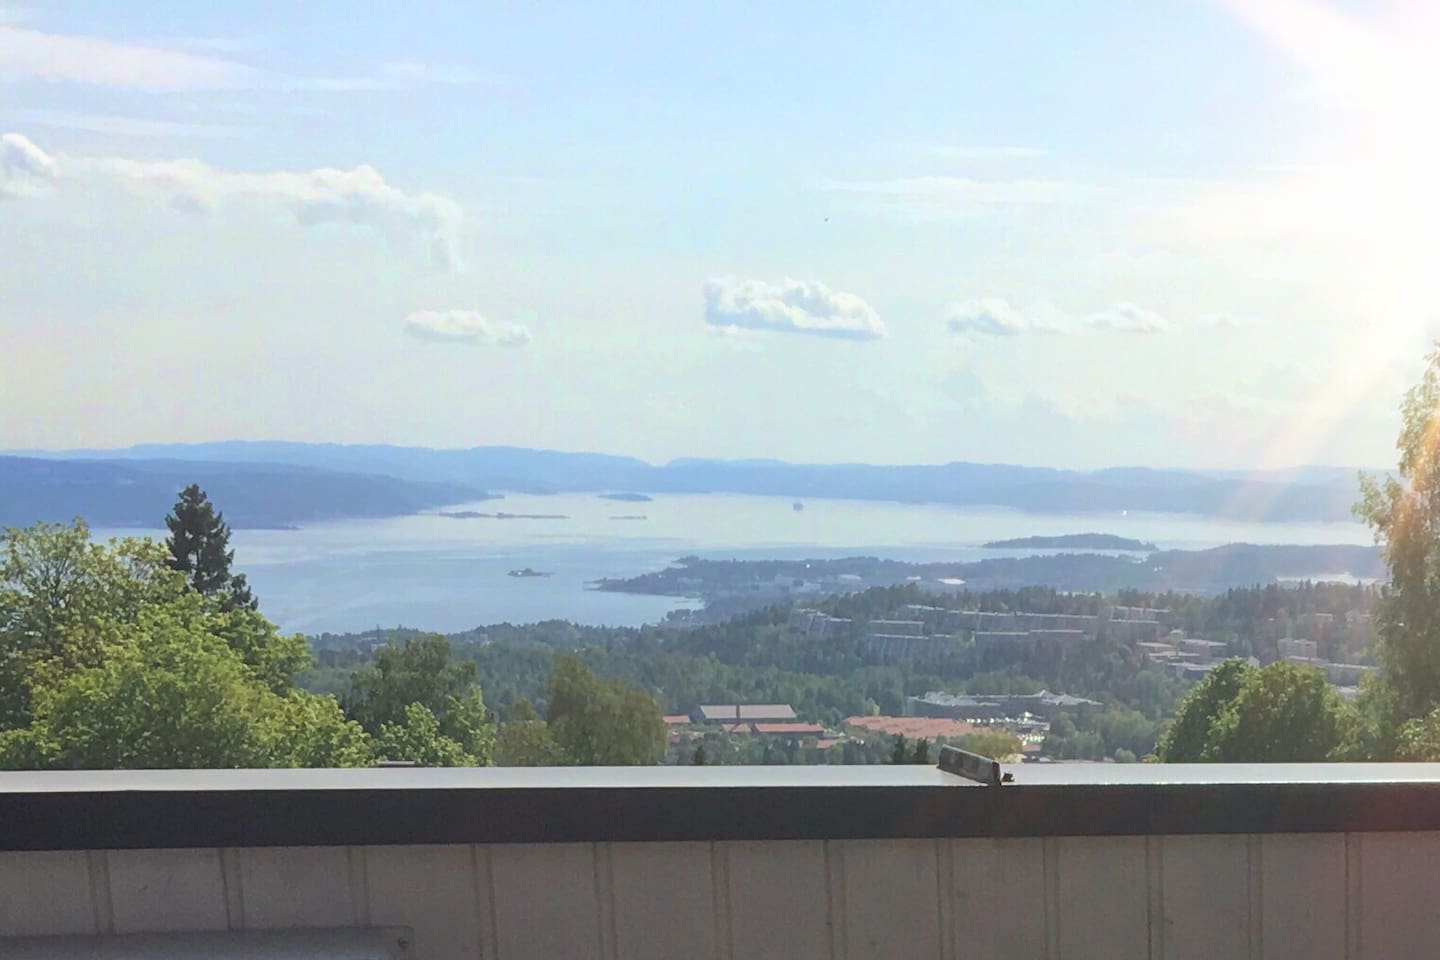 Magnificent view from the veranda overlooking the Oslo Fjord